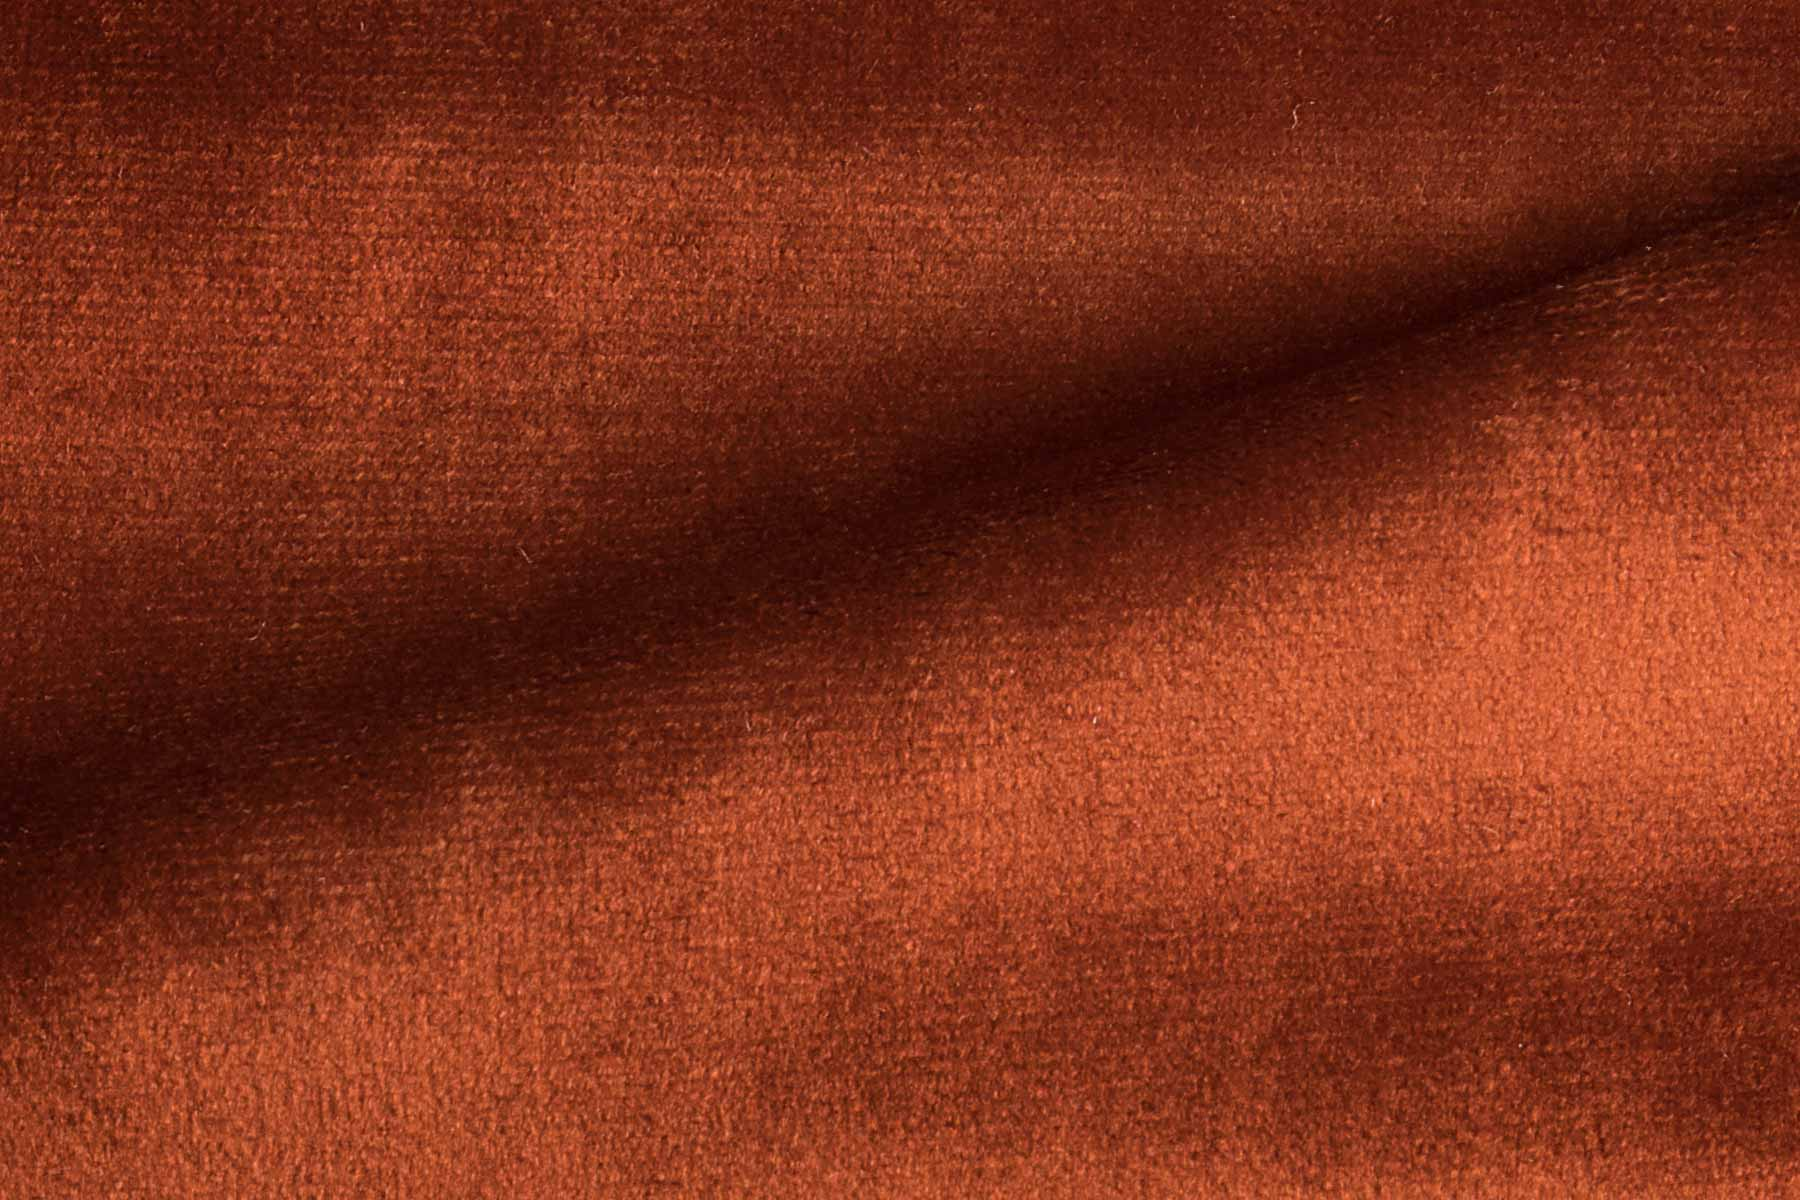 RADIANCE VELVET TERRACOTA Fabric by KOKET